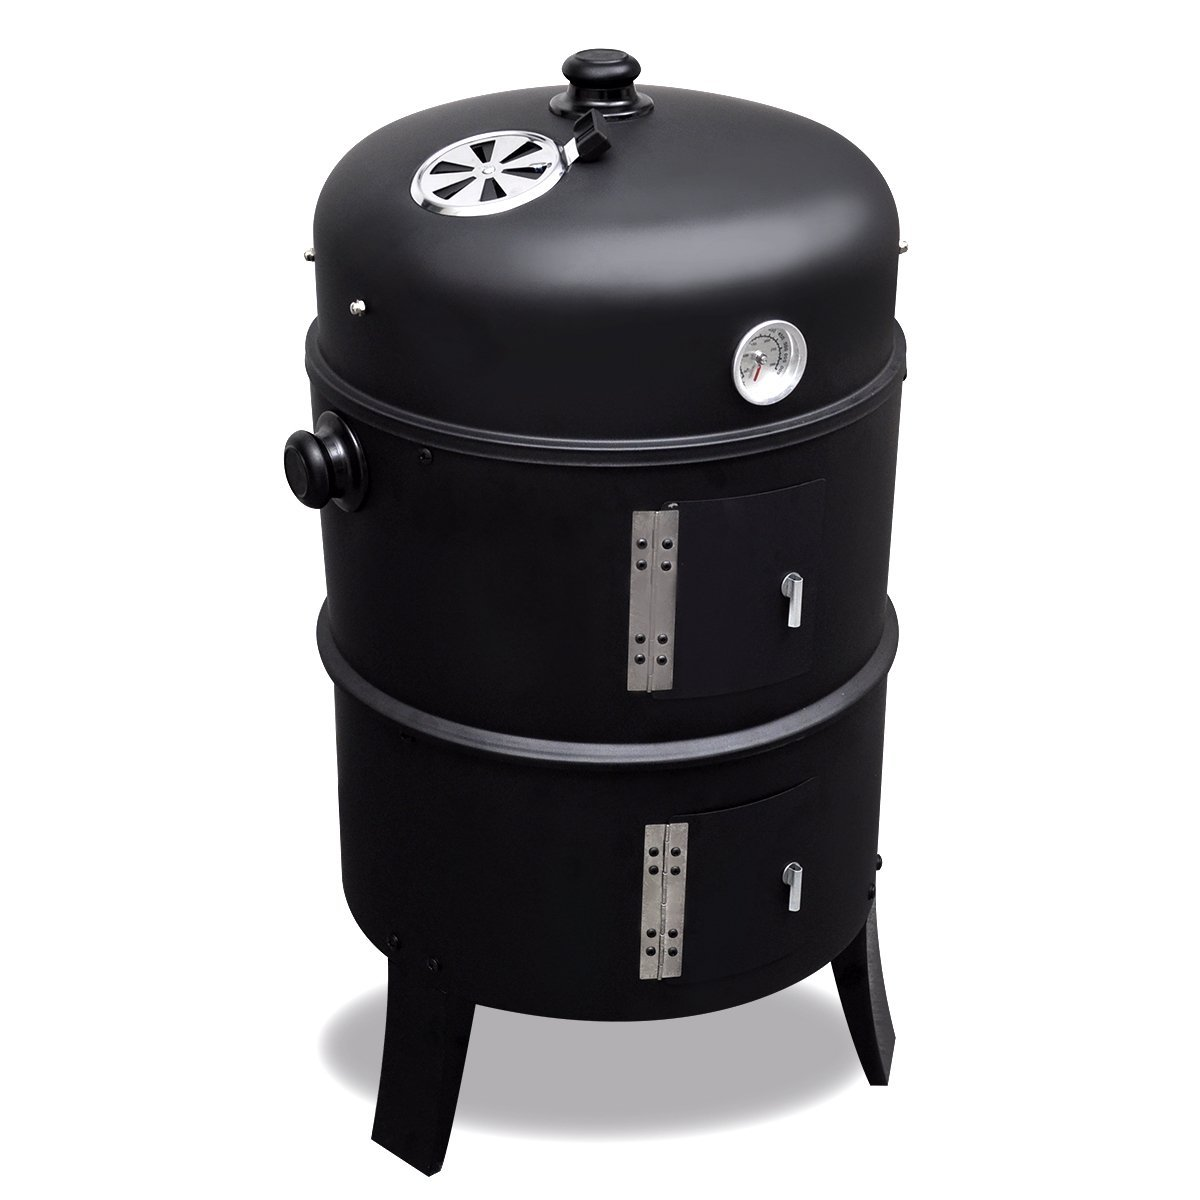 ideal for your garden balcony or terrace 01311 BBQ Smoker Barbecue grill with lid and vertical modular smoker with thermometer and adjustment air flow to regulate the heat